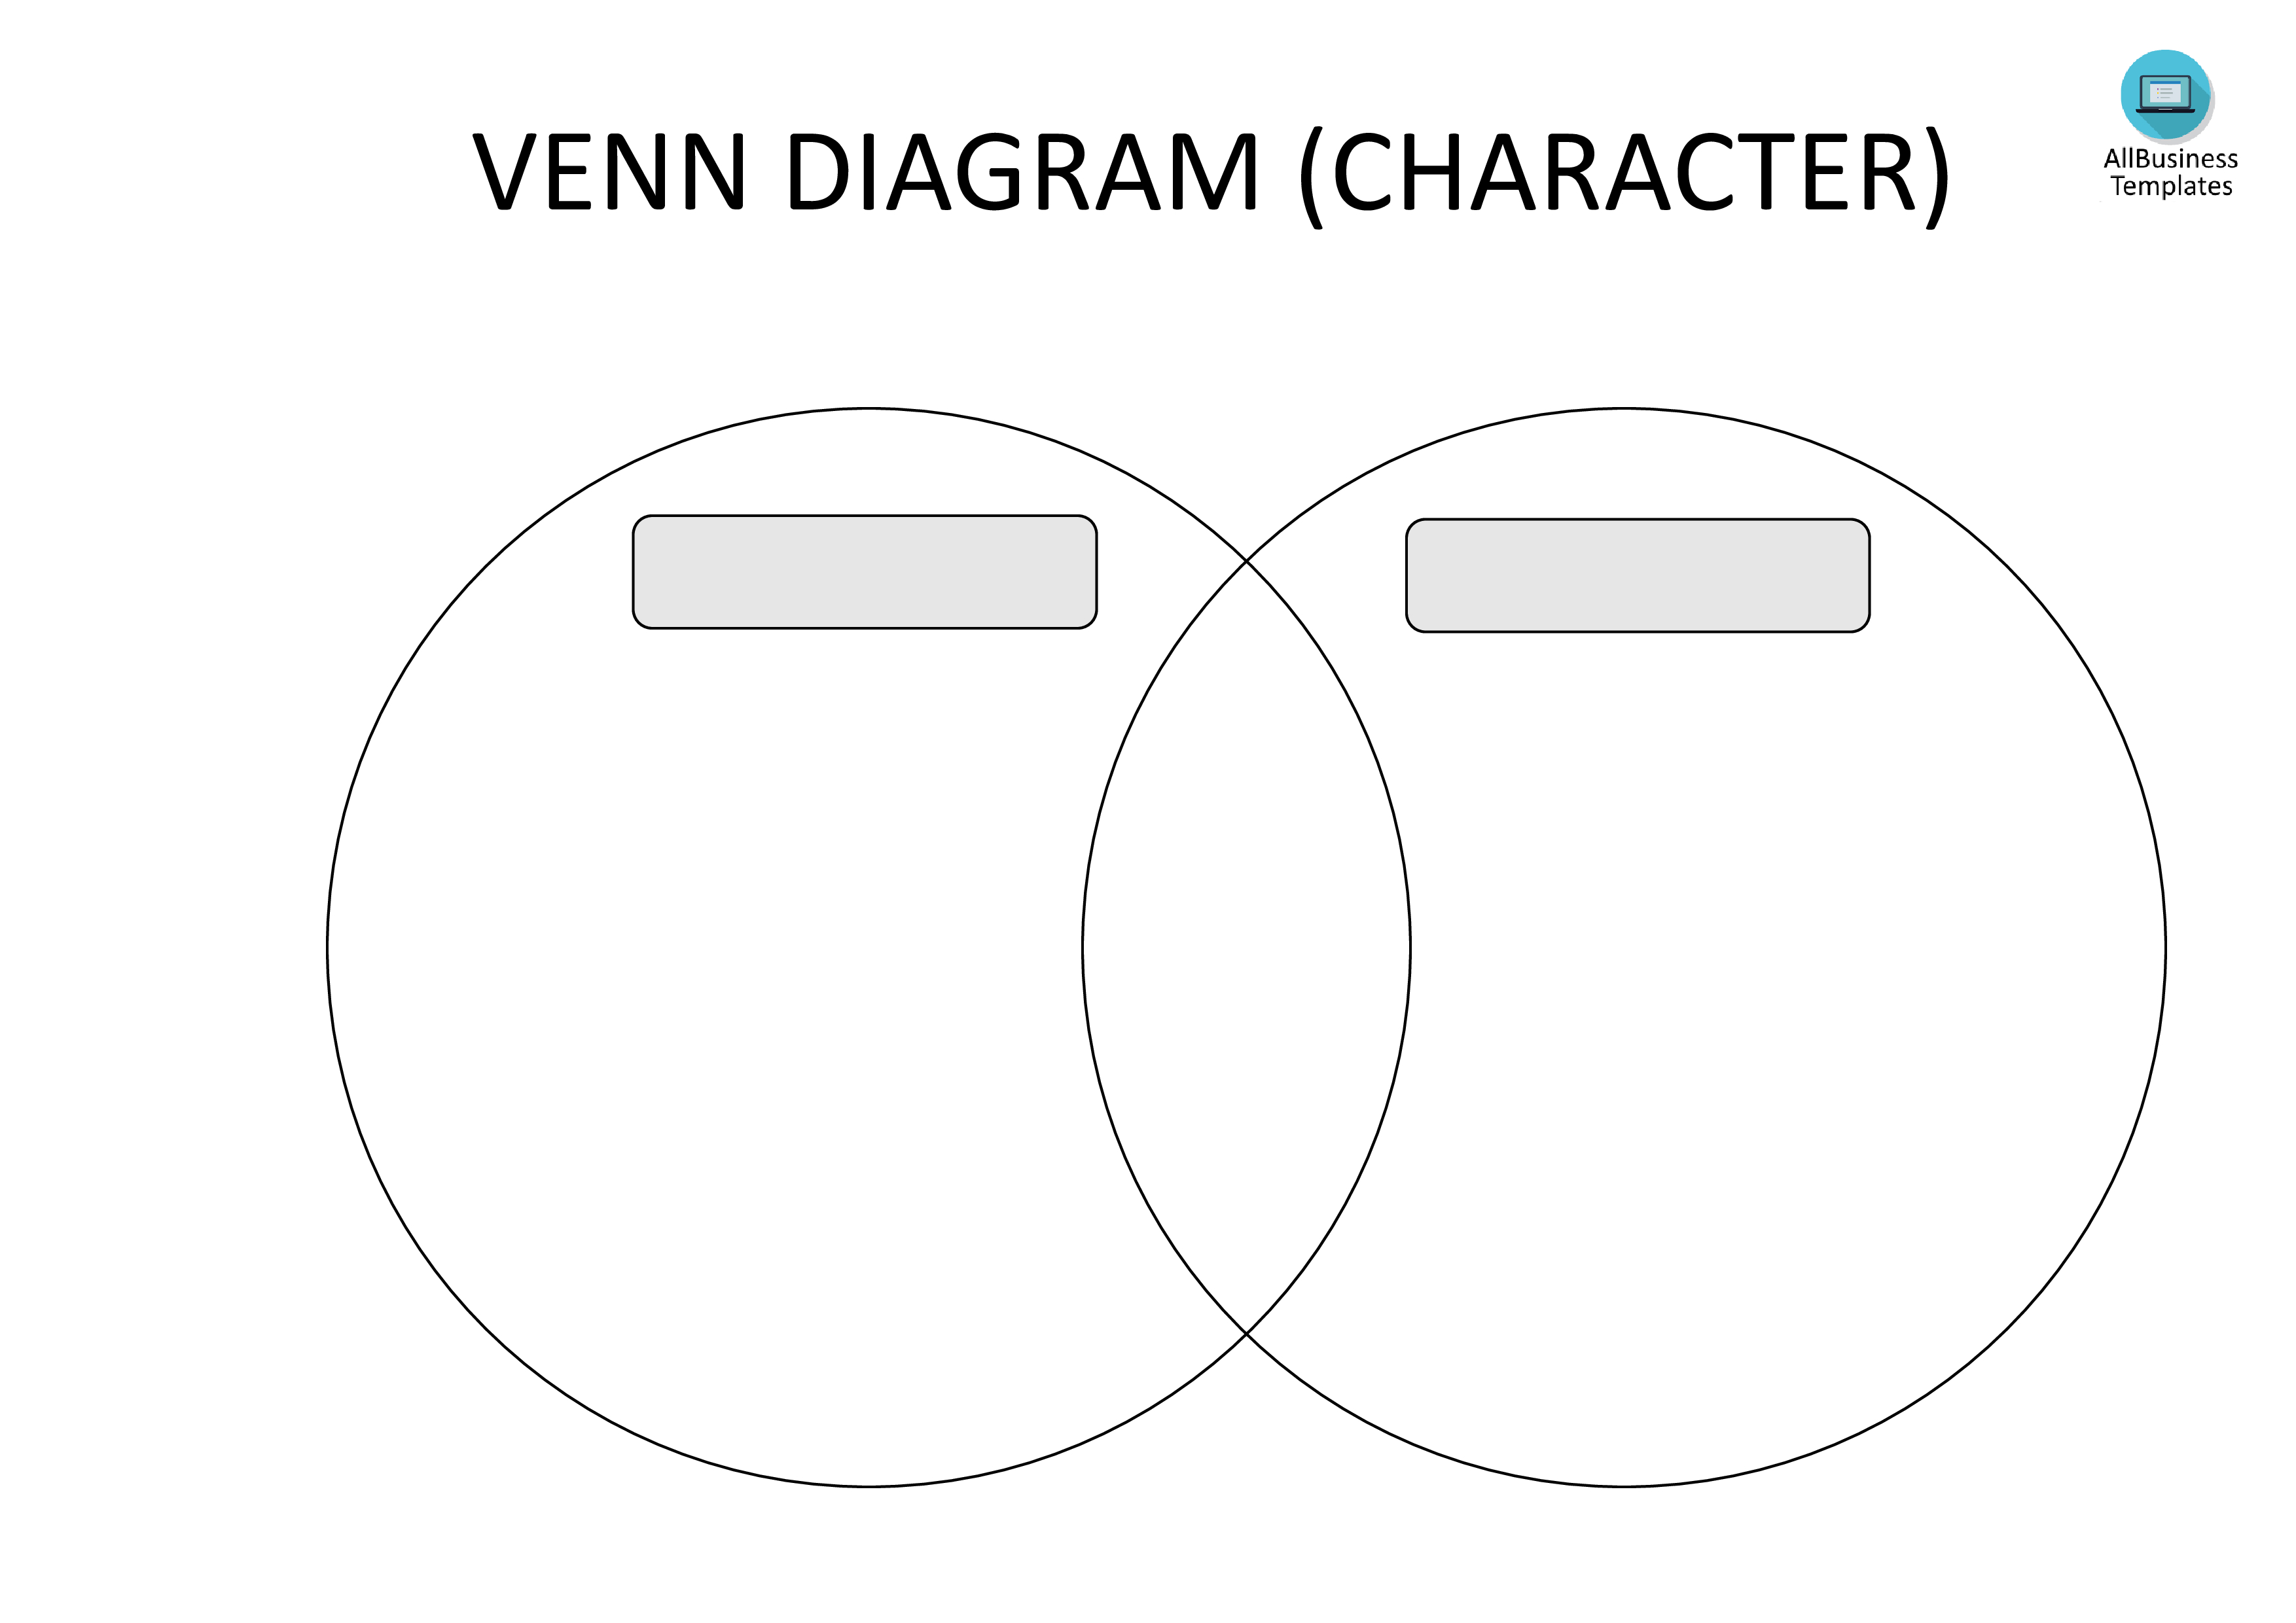 Free Blank Venn Diagram Template | Templates At - Free Printable Venn Diagram